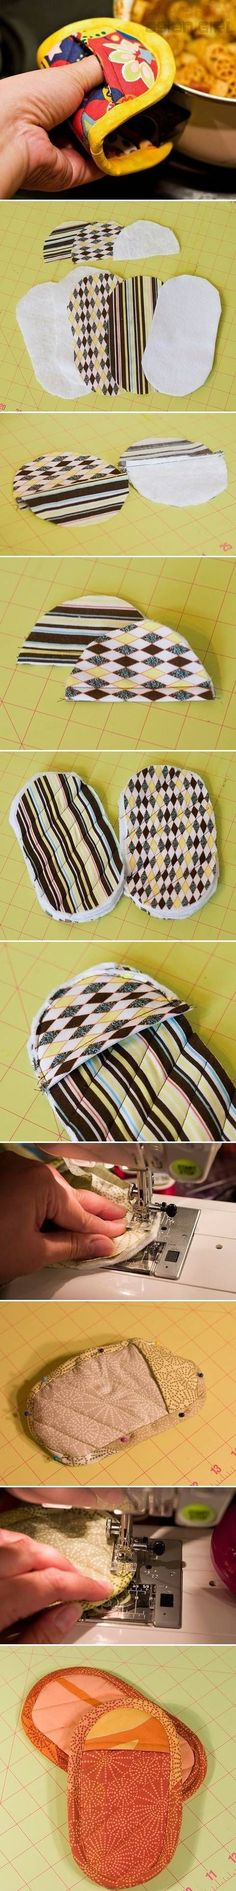 DIY Nice Pot Holder diy easy crafts diy ideas diy crafts do it yourself easy diy diy tips diy images diy photos easy diy craft ideas diy tutorials pot holder